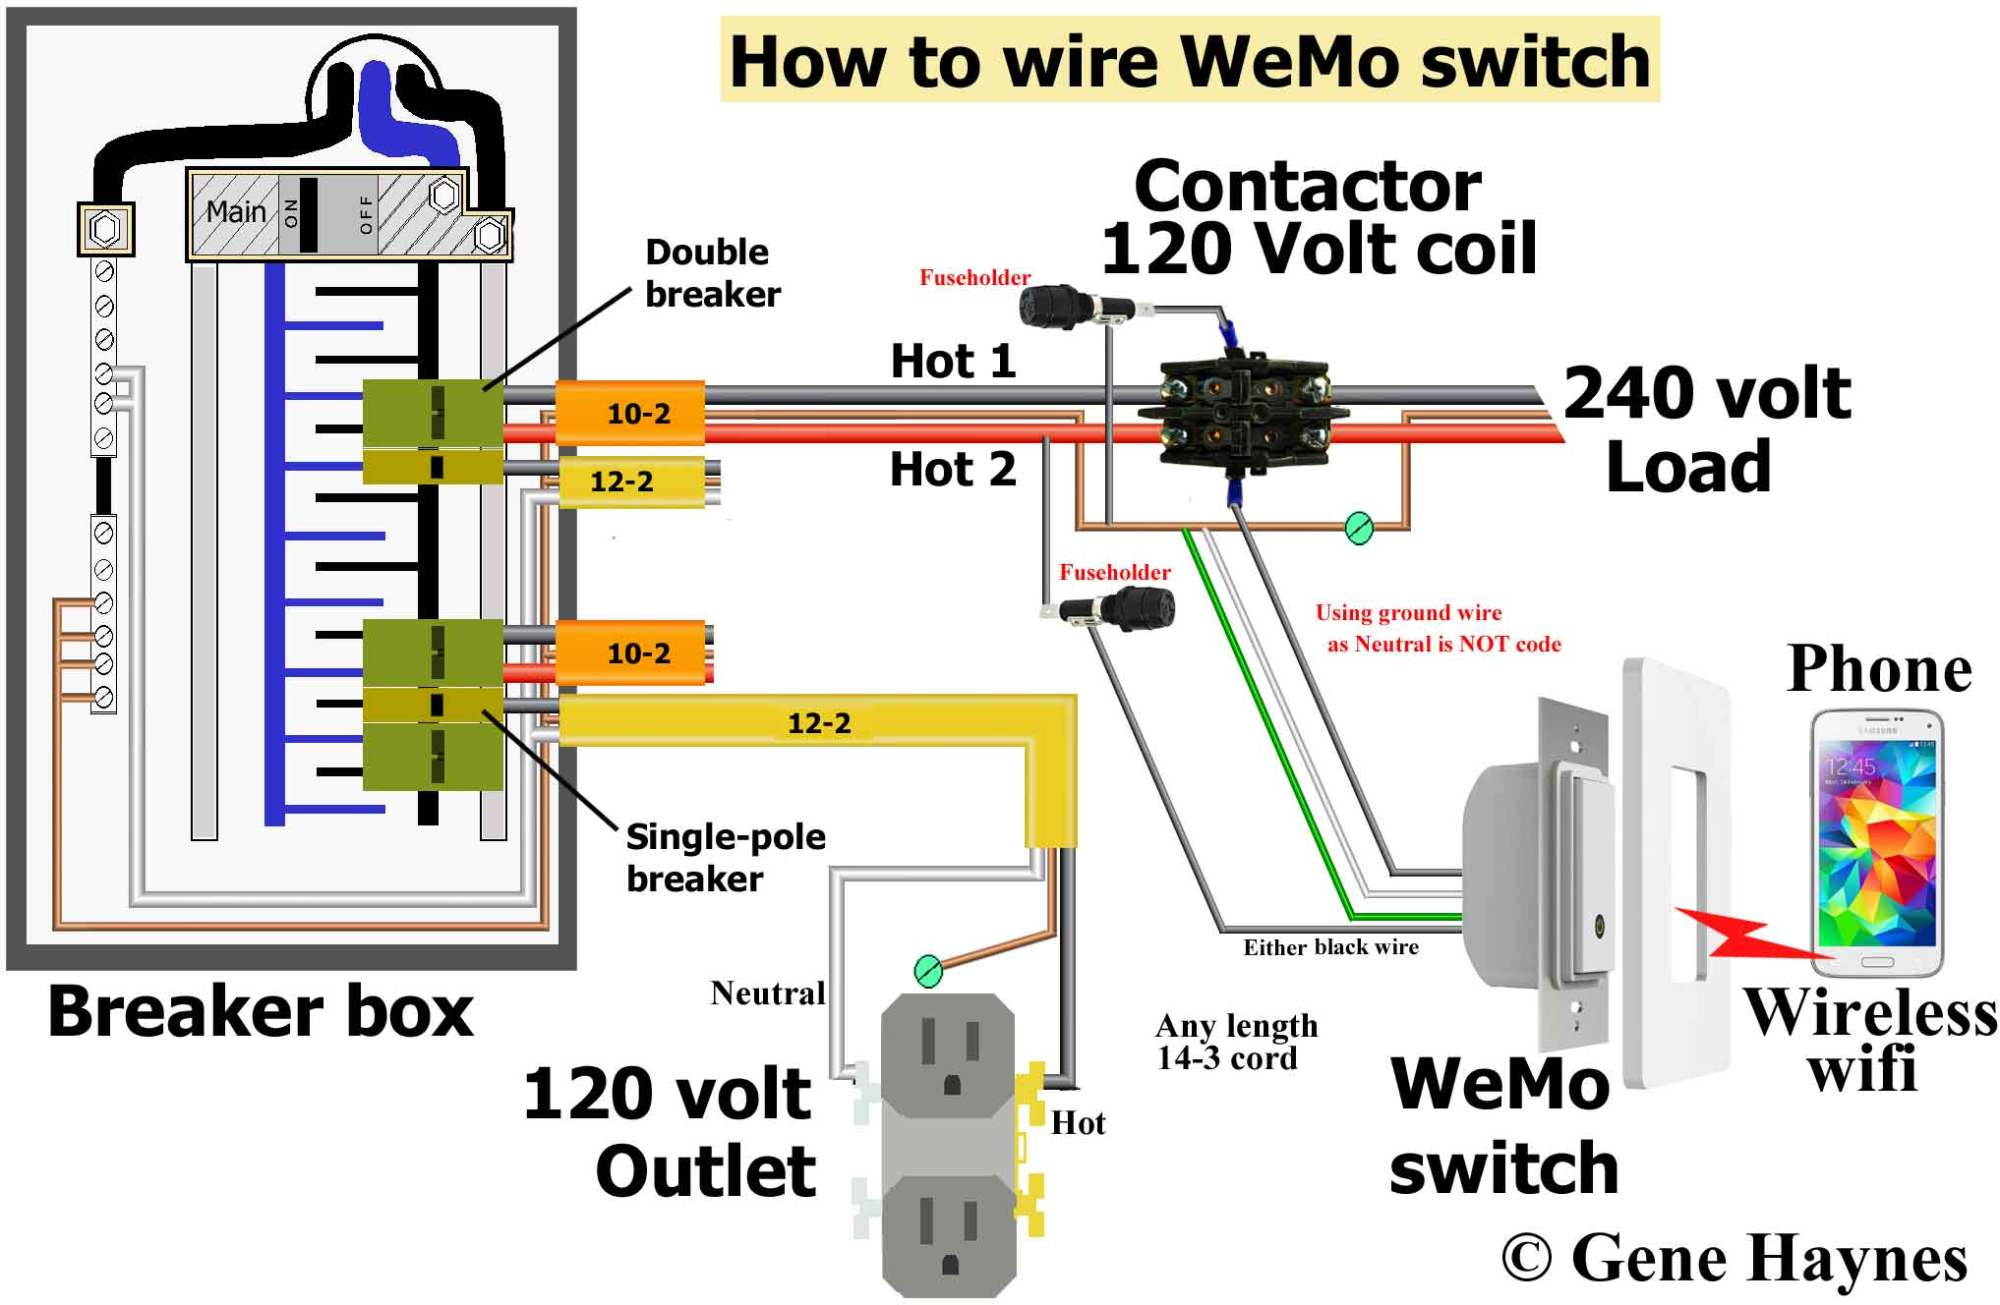 hight resolution of wemo wiring diagram wiring diagram wemo wiring diagram wemo wiring diagram